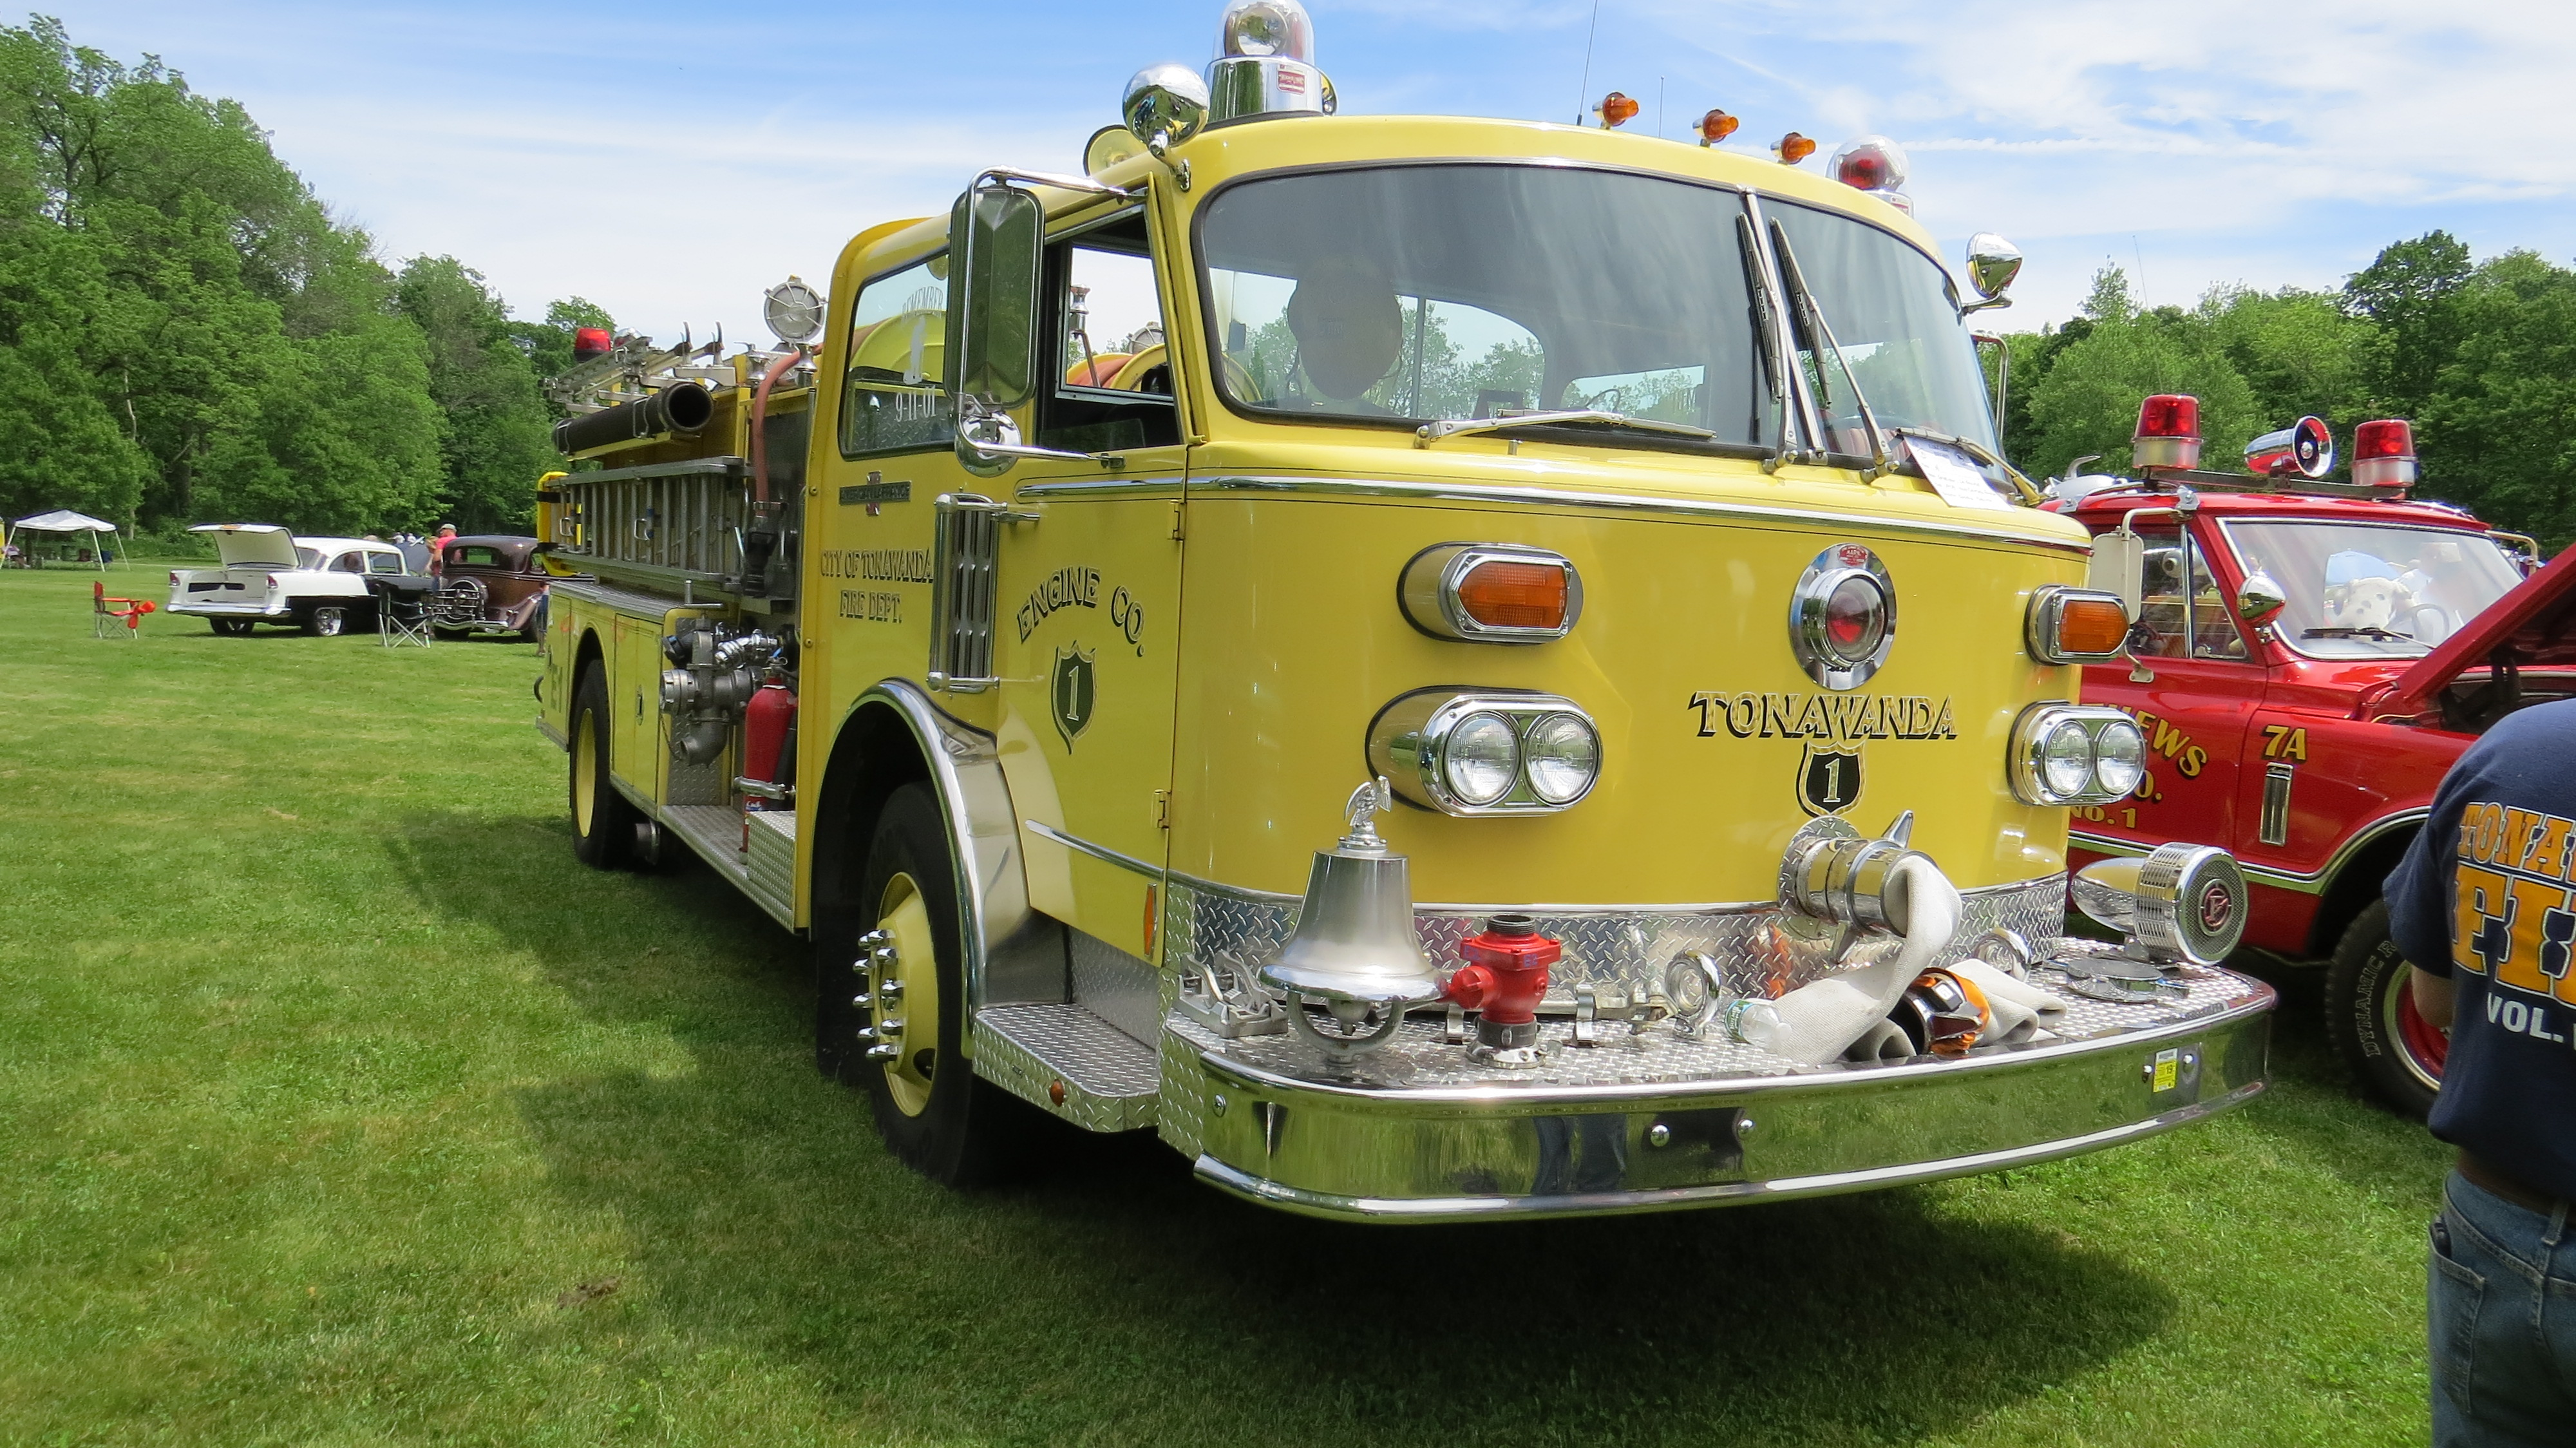 IMG_5303-Class-14-Andrew-Balling-1979-American-LaFrance-Century-pumper